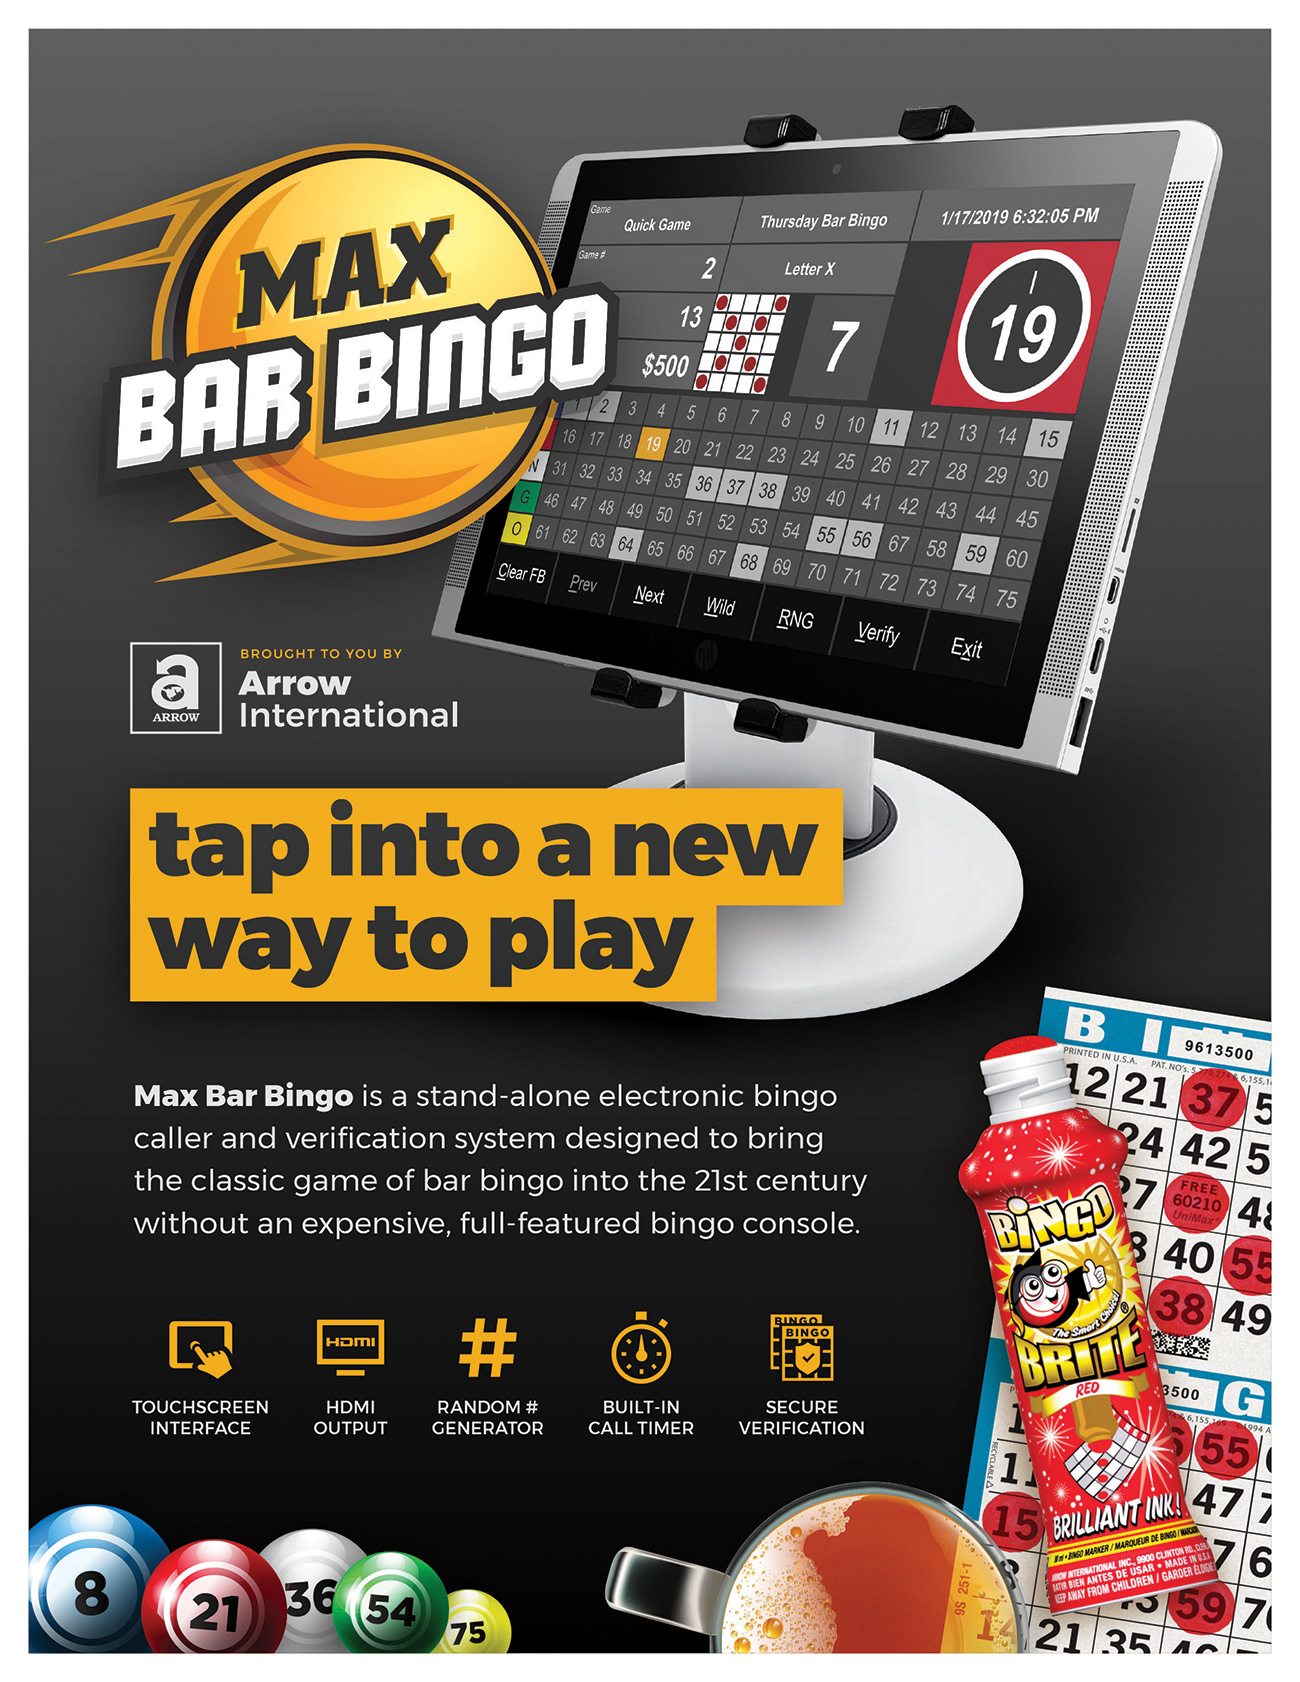 Max Bar Bingo Promotional Materials/Equipment Flyers & Brochures